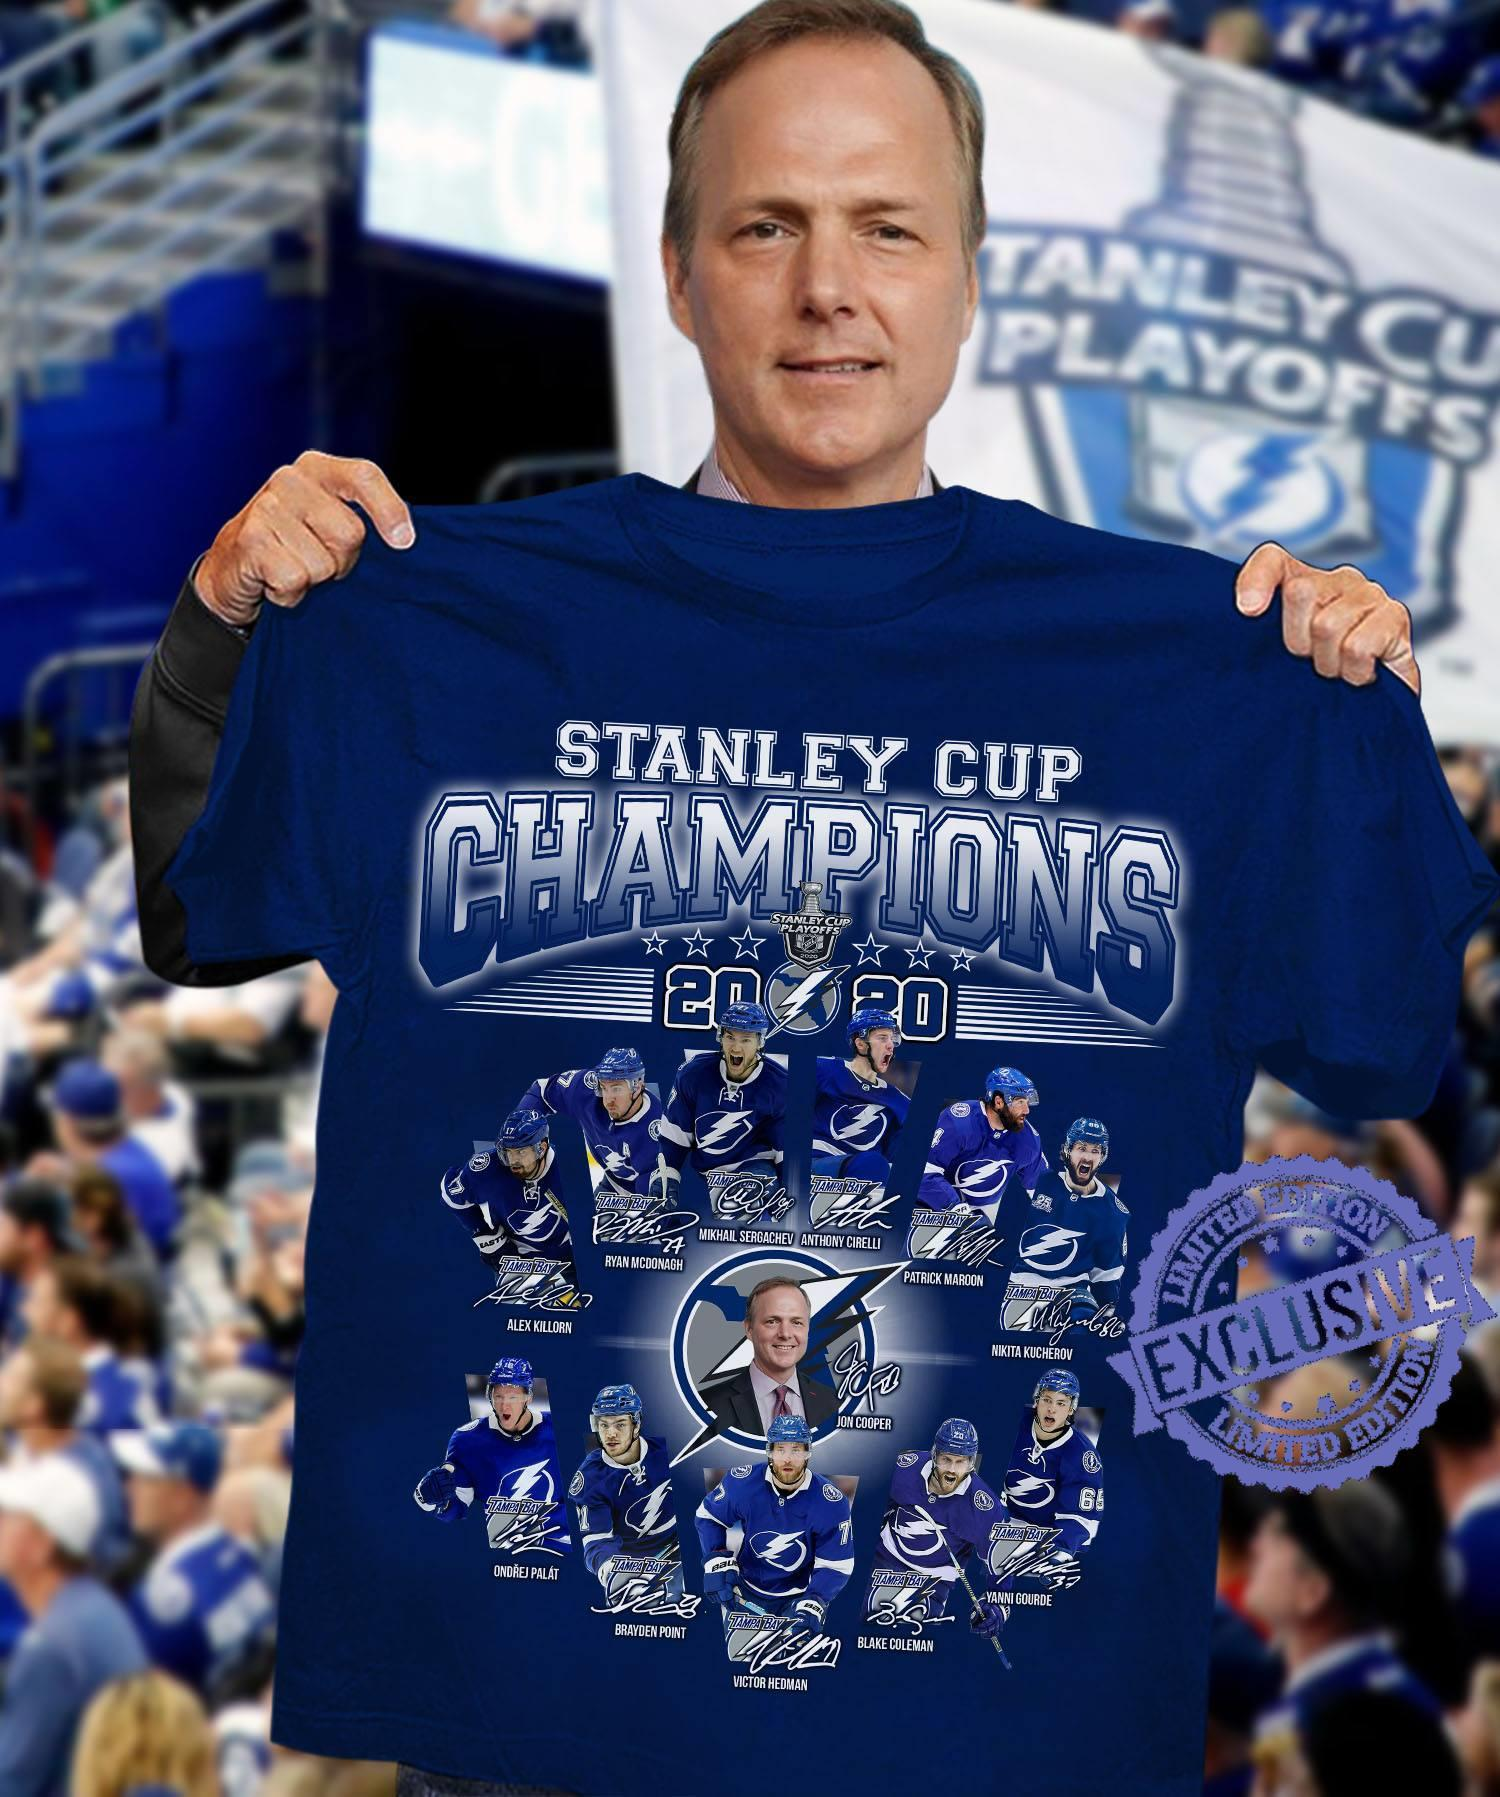 Stanley cup champions 2020 shirt